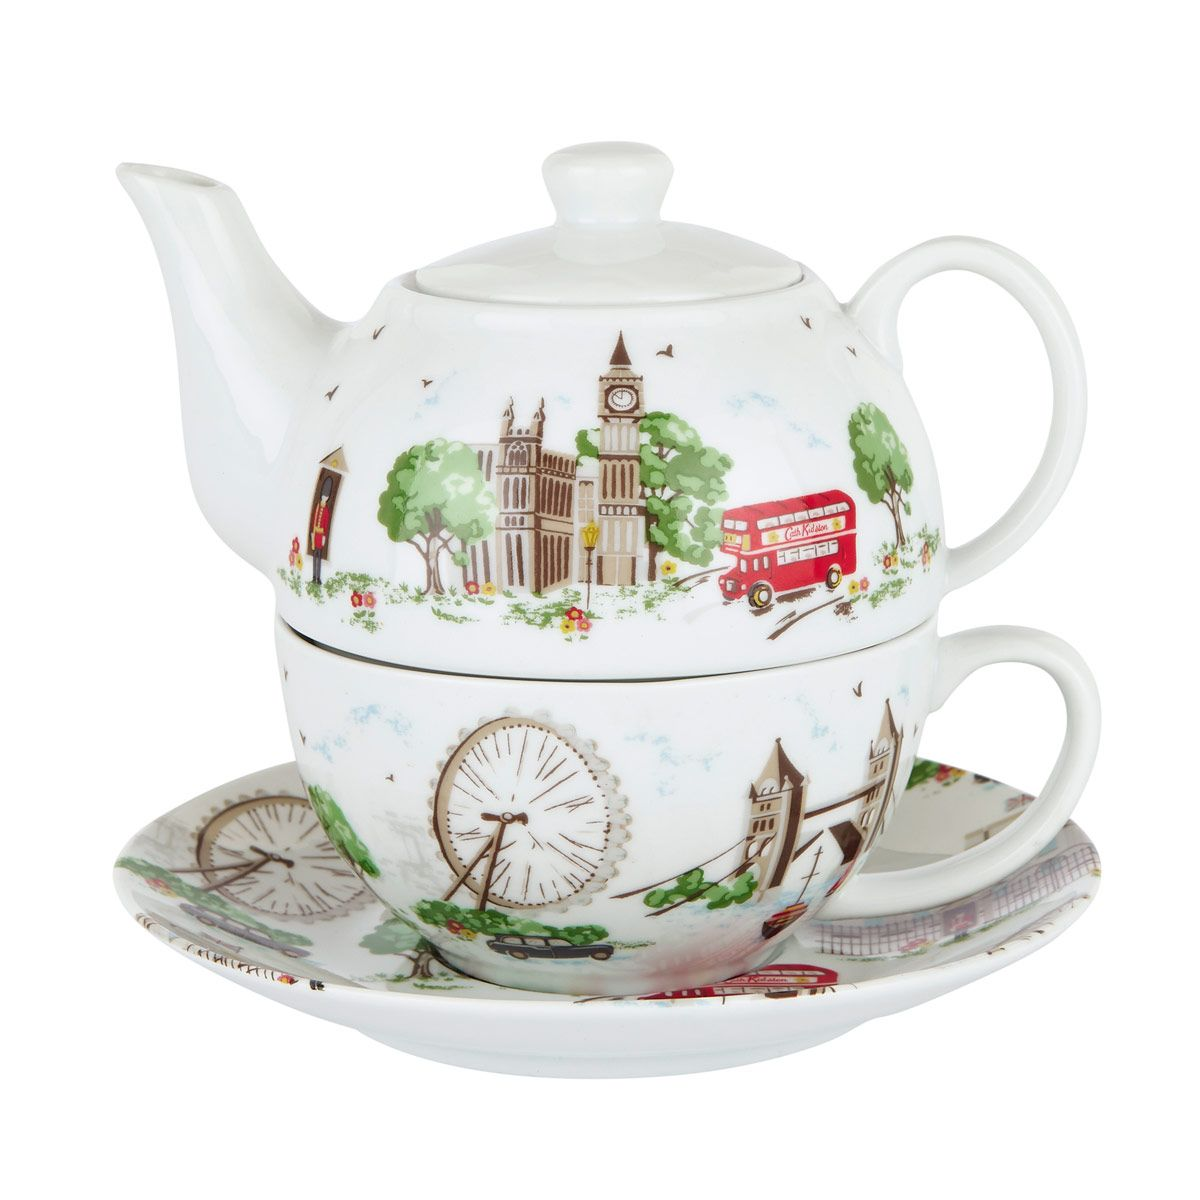 Teapot With Cup Cath Kidston 1958 British London Tea For One Teaset